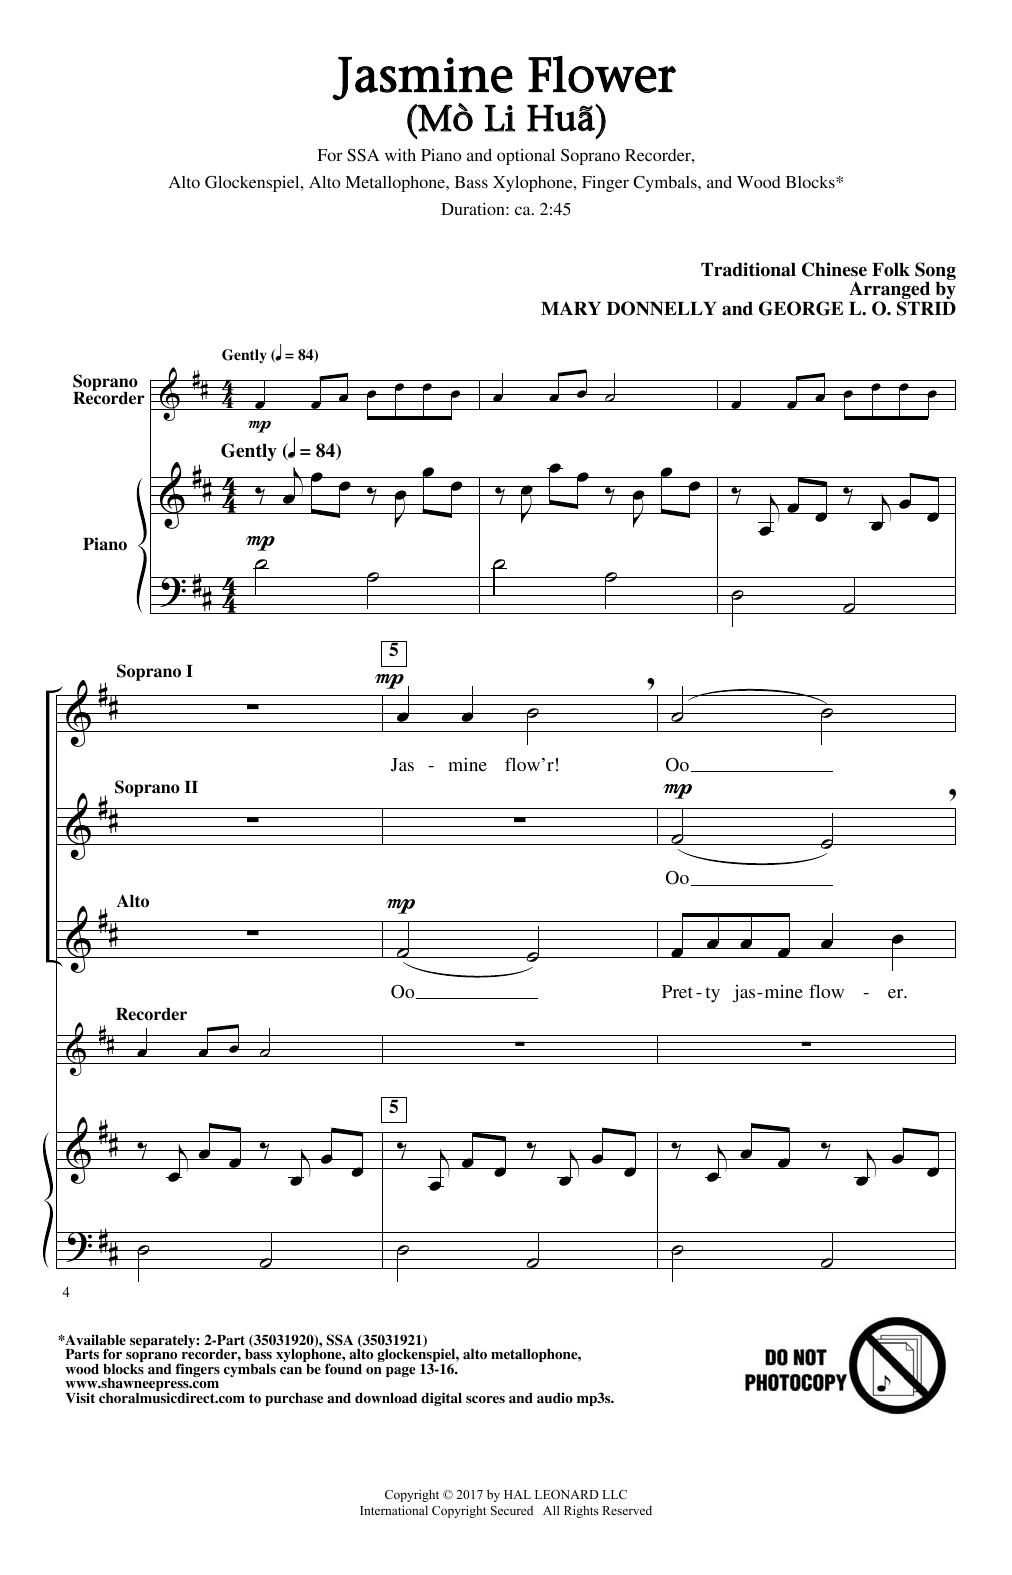 Mary Donnelly Jasmine Flower (Mo Li Hua) sheet music notes and chords